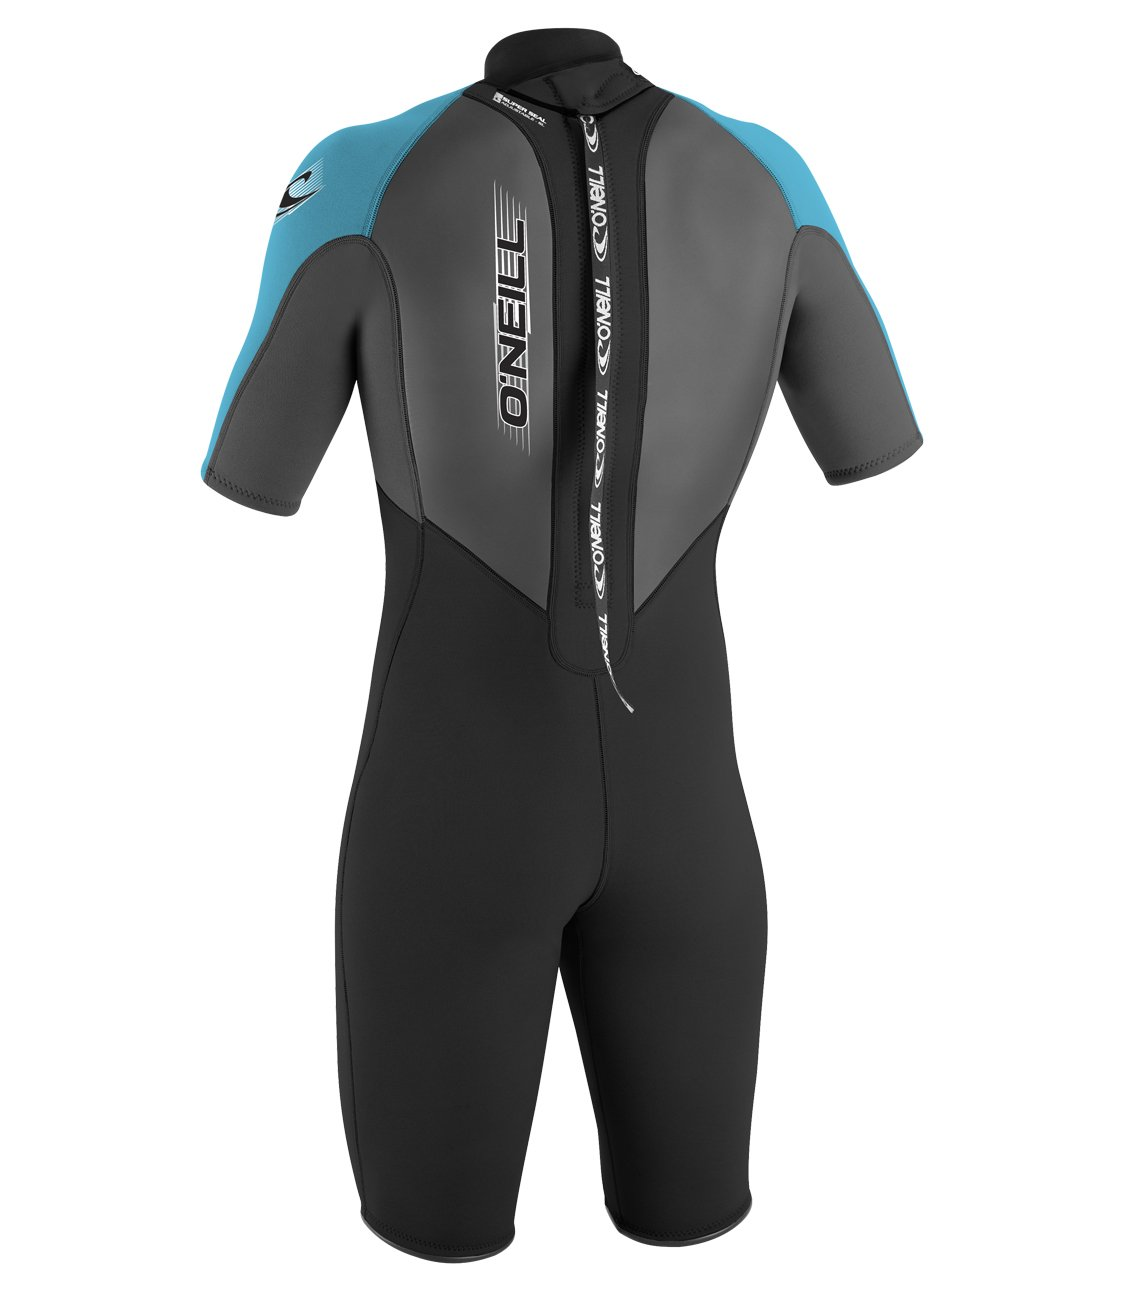 O'Neill Youth Reactor 2mm Back Zip Spring Wetsuit, Black/Graphite/Turquoise, 4 by O'Neill Wetsuits (Image #2)